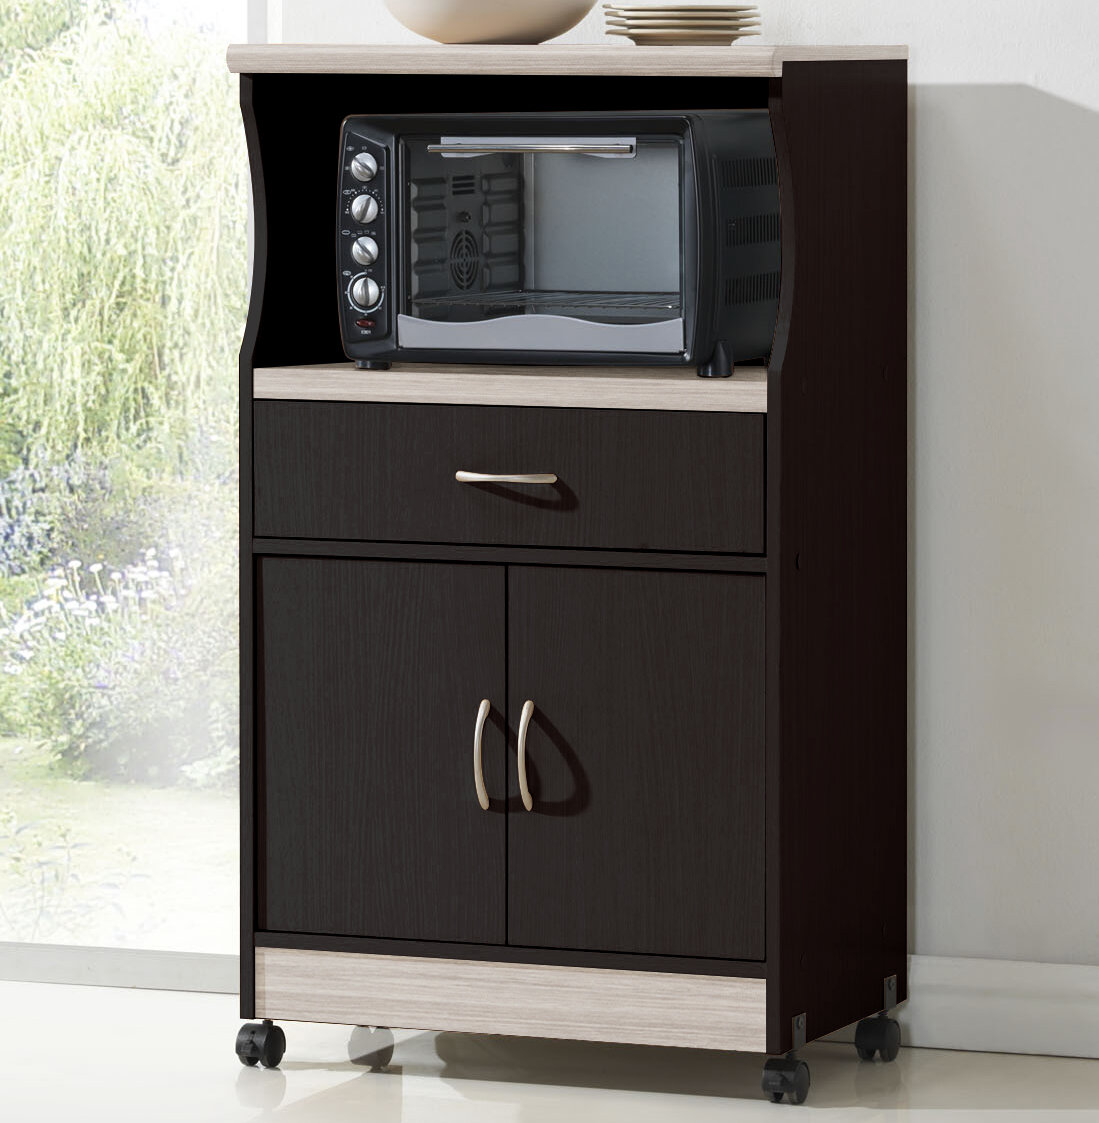 Super Small Kitchen Islands Carts Youll Love In 2019 Wayfair Download Free Architecture Designs Grimeyleaguecom